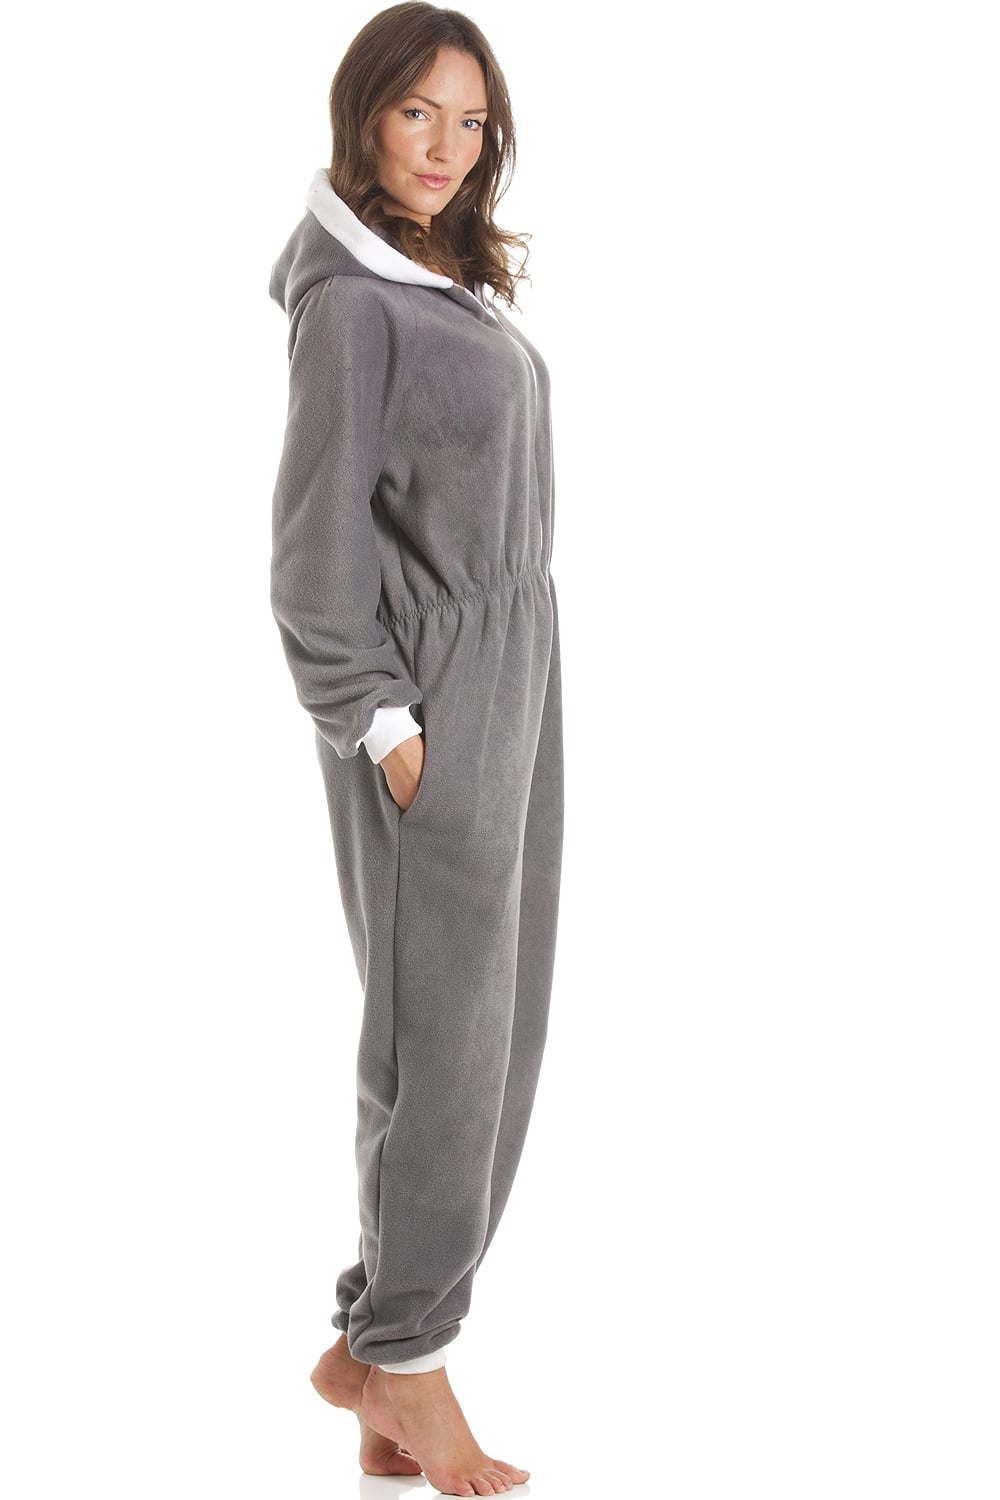 Camille Fleece Hooded All In One Grey Onesie Pyjama d73a986fc